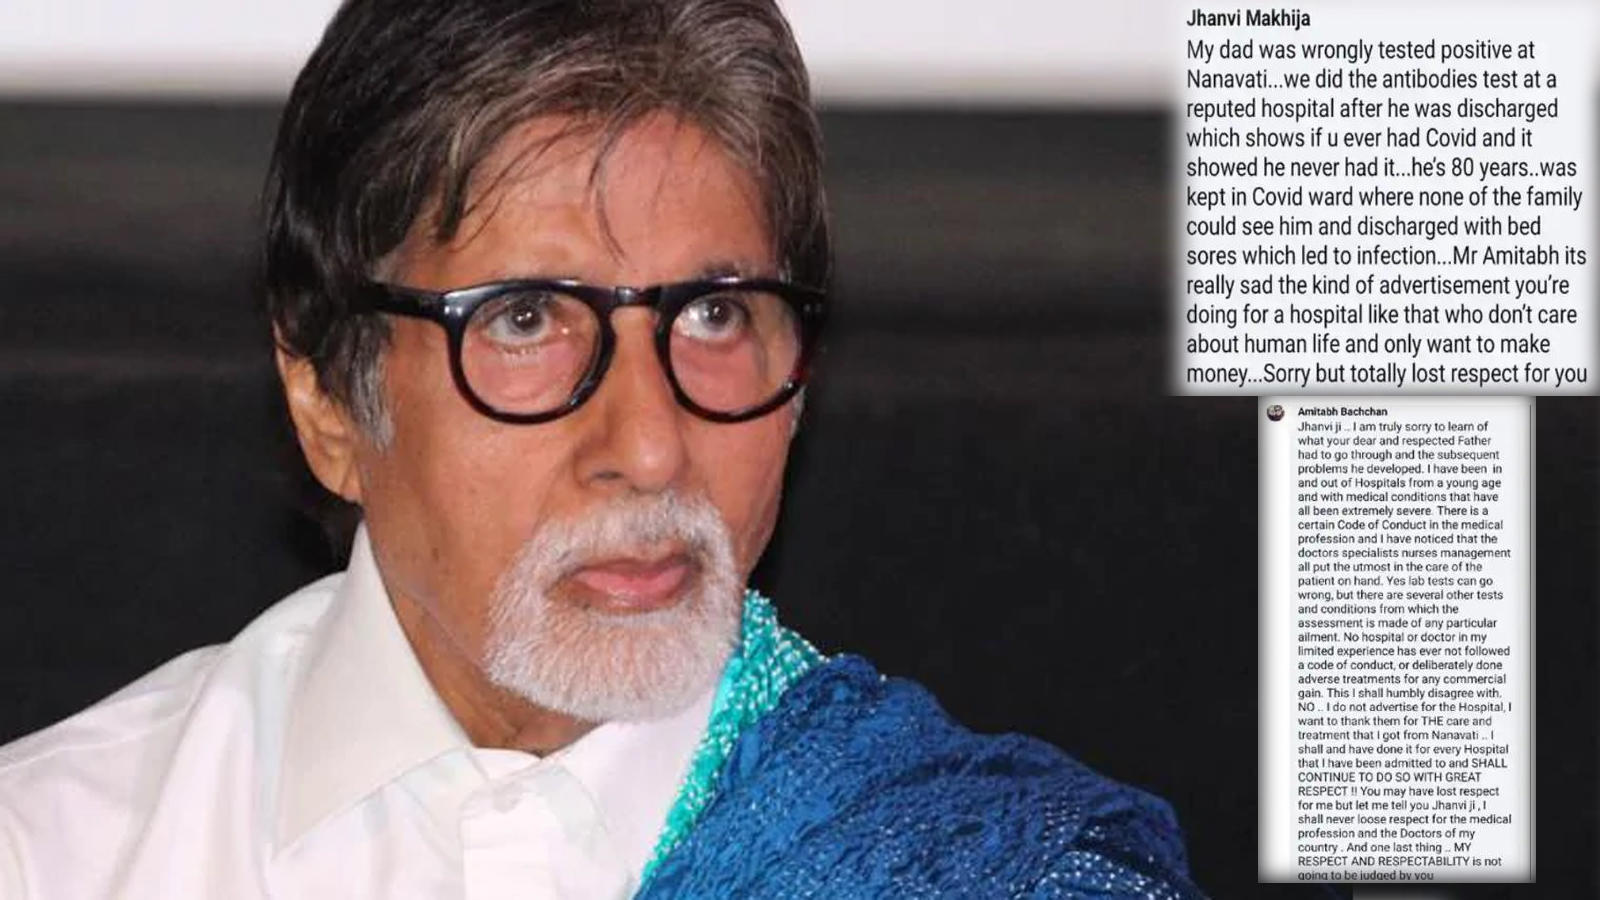 netizen-attacks-amitabh-bachchan-online-writes-totally-lost-respect-for-you-big-b-hits-back-says-my-respectability-is-not-going-to-be-judged-by-you